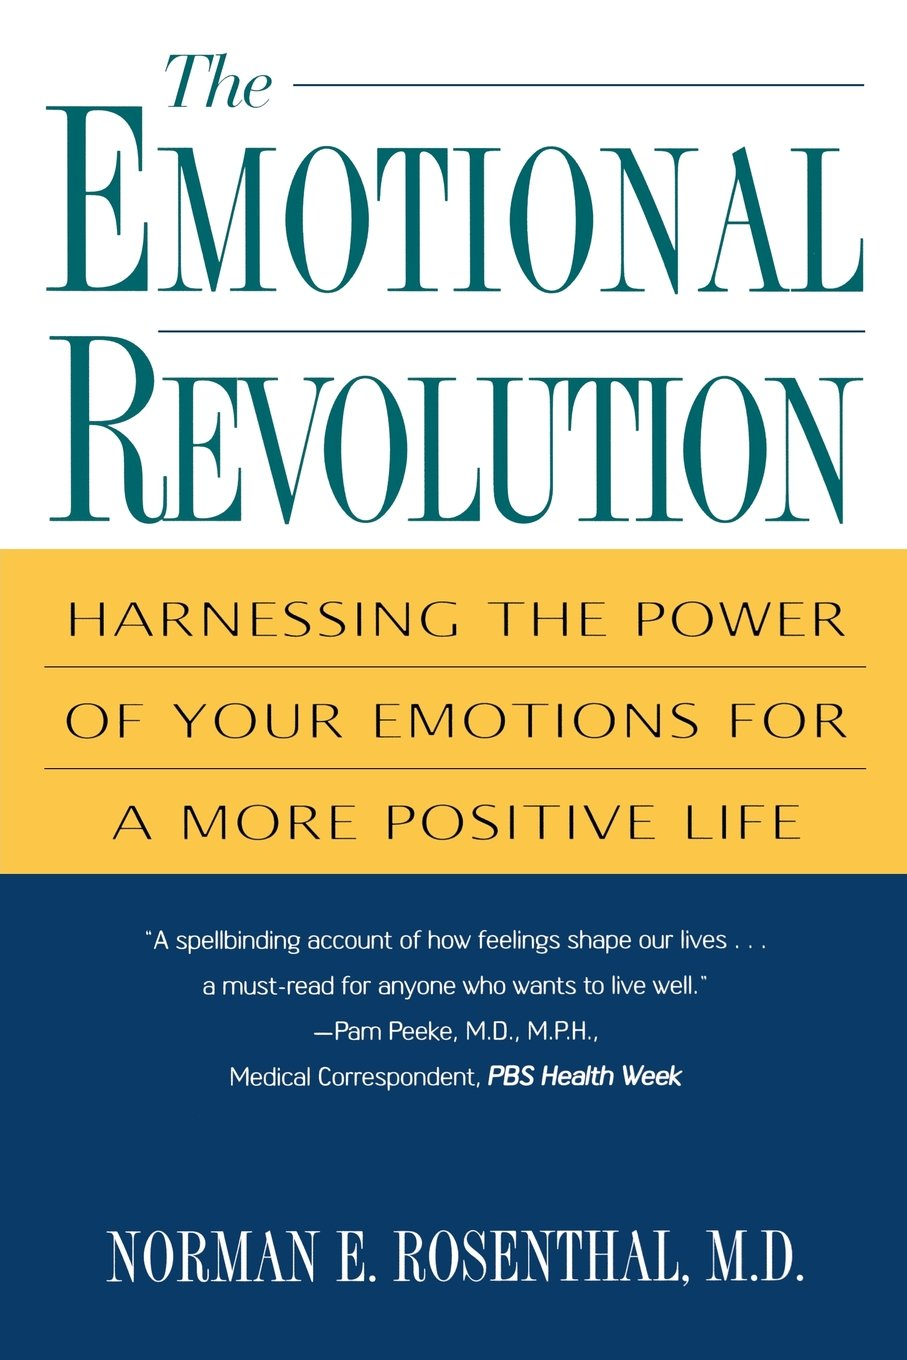 Download The Emotional Revolution: Harnessing the Power of Your Emotions for a More Positive Life ebook